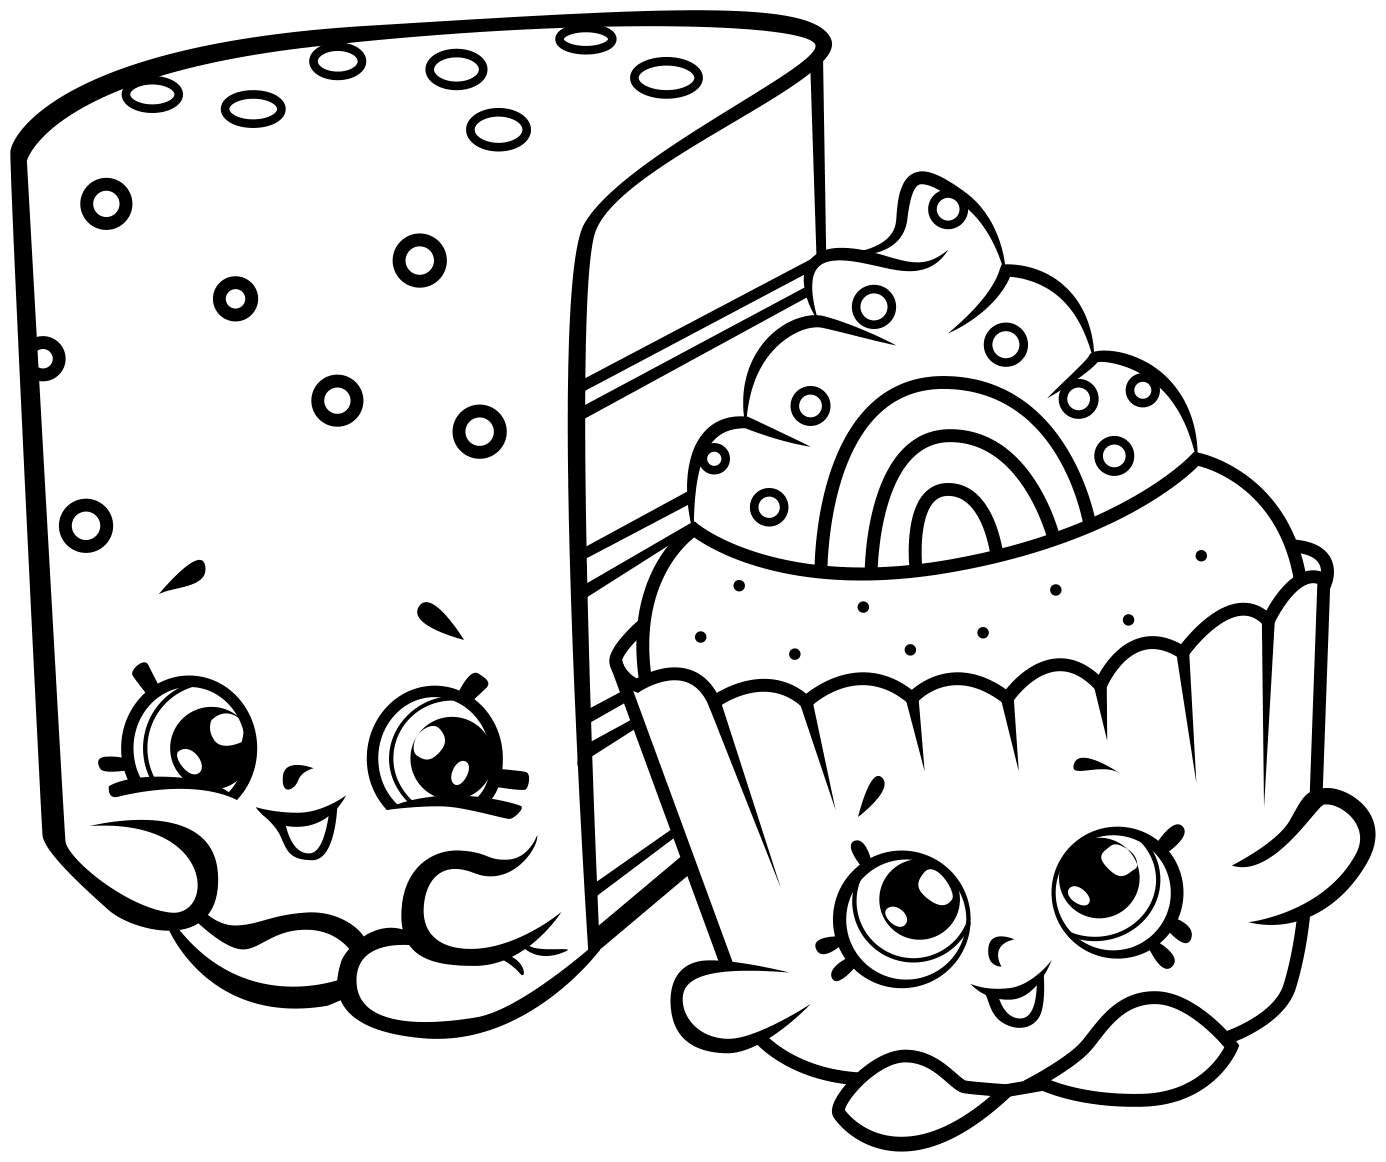 Coloring Pages : Coloring Pages Shopkinsle Sheets For Kids - Free Printable Coloring Pages